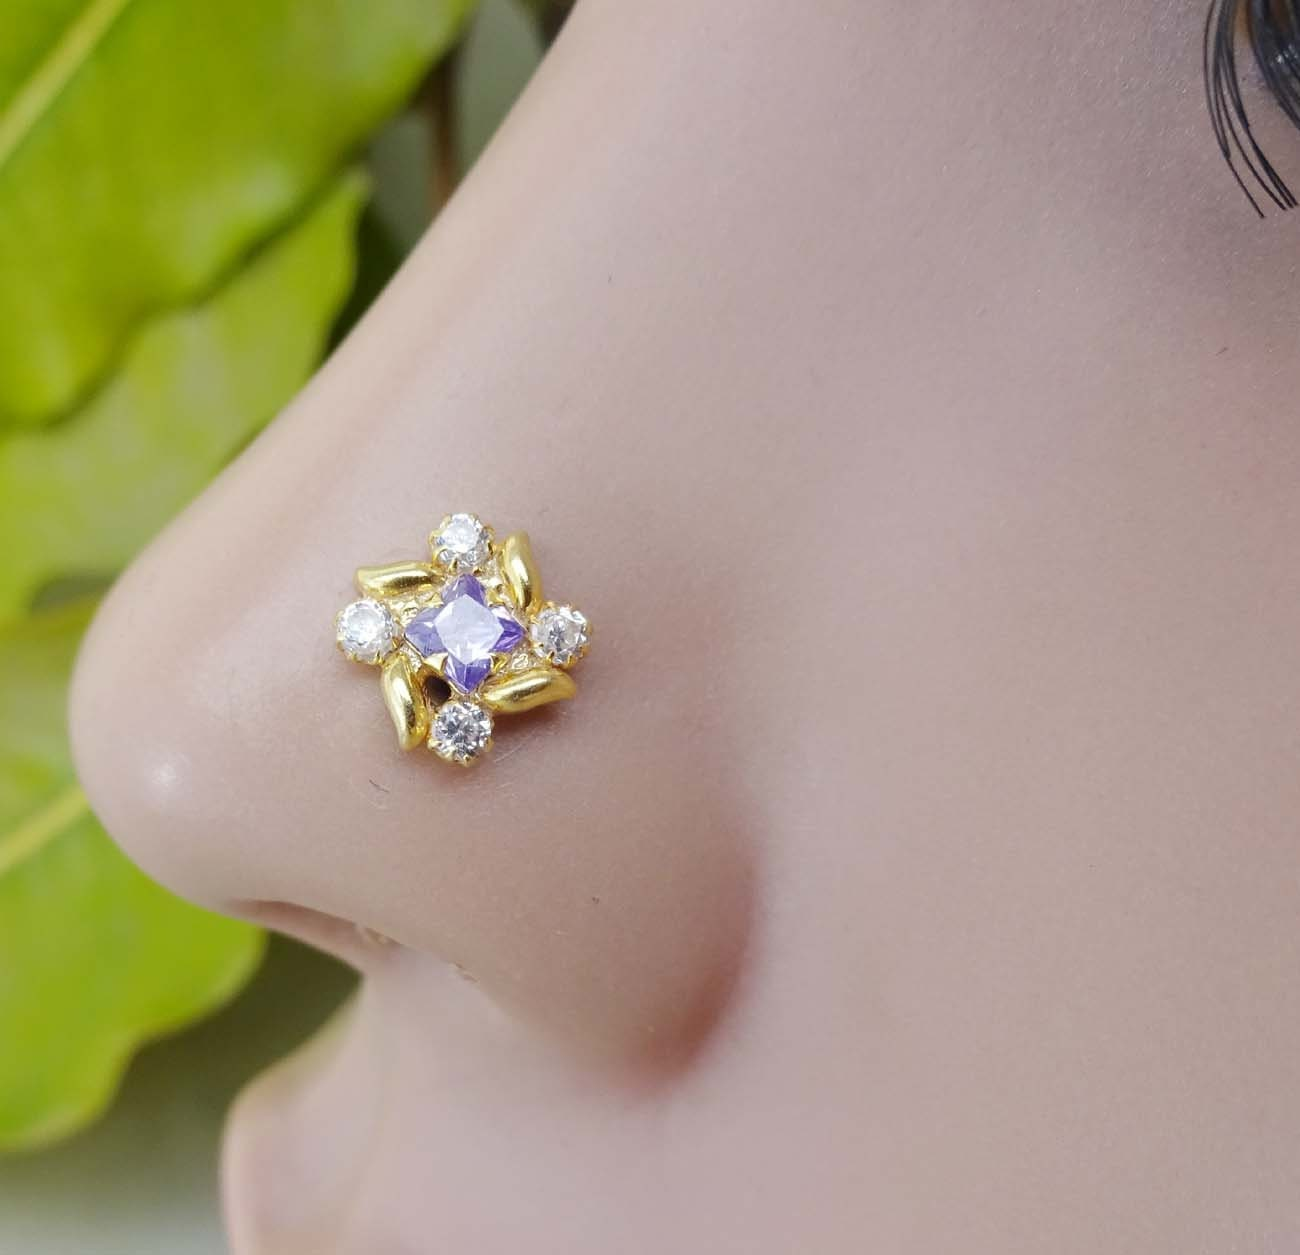 Body Jewelry Fashion Jewelry Good Sapphire Nose Stud White Gold Nose Stud Indian Nose Stud Silver Nose Piercing